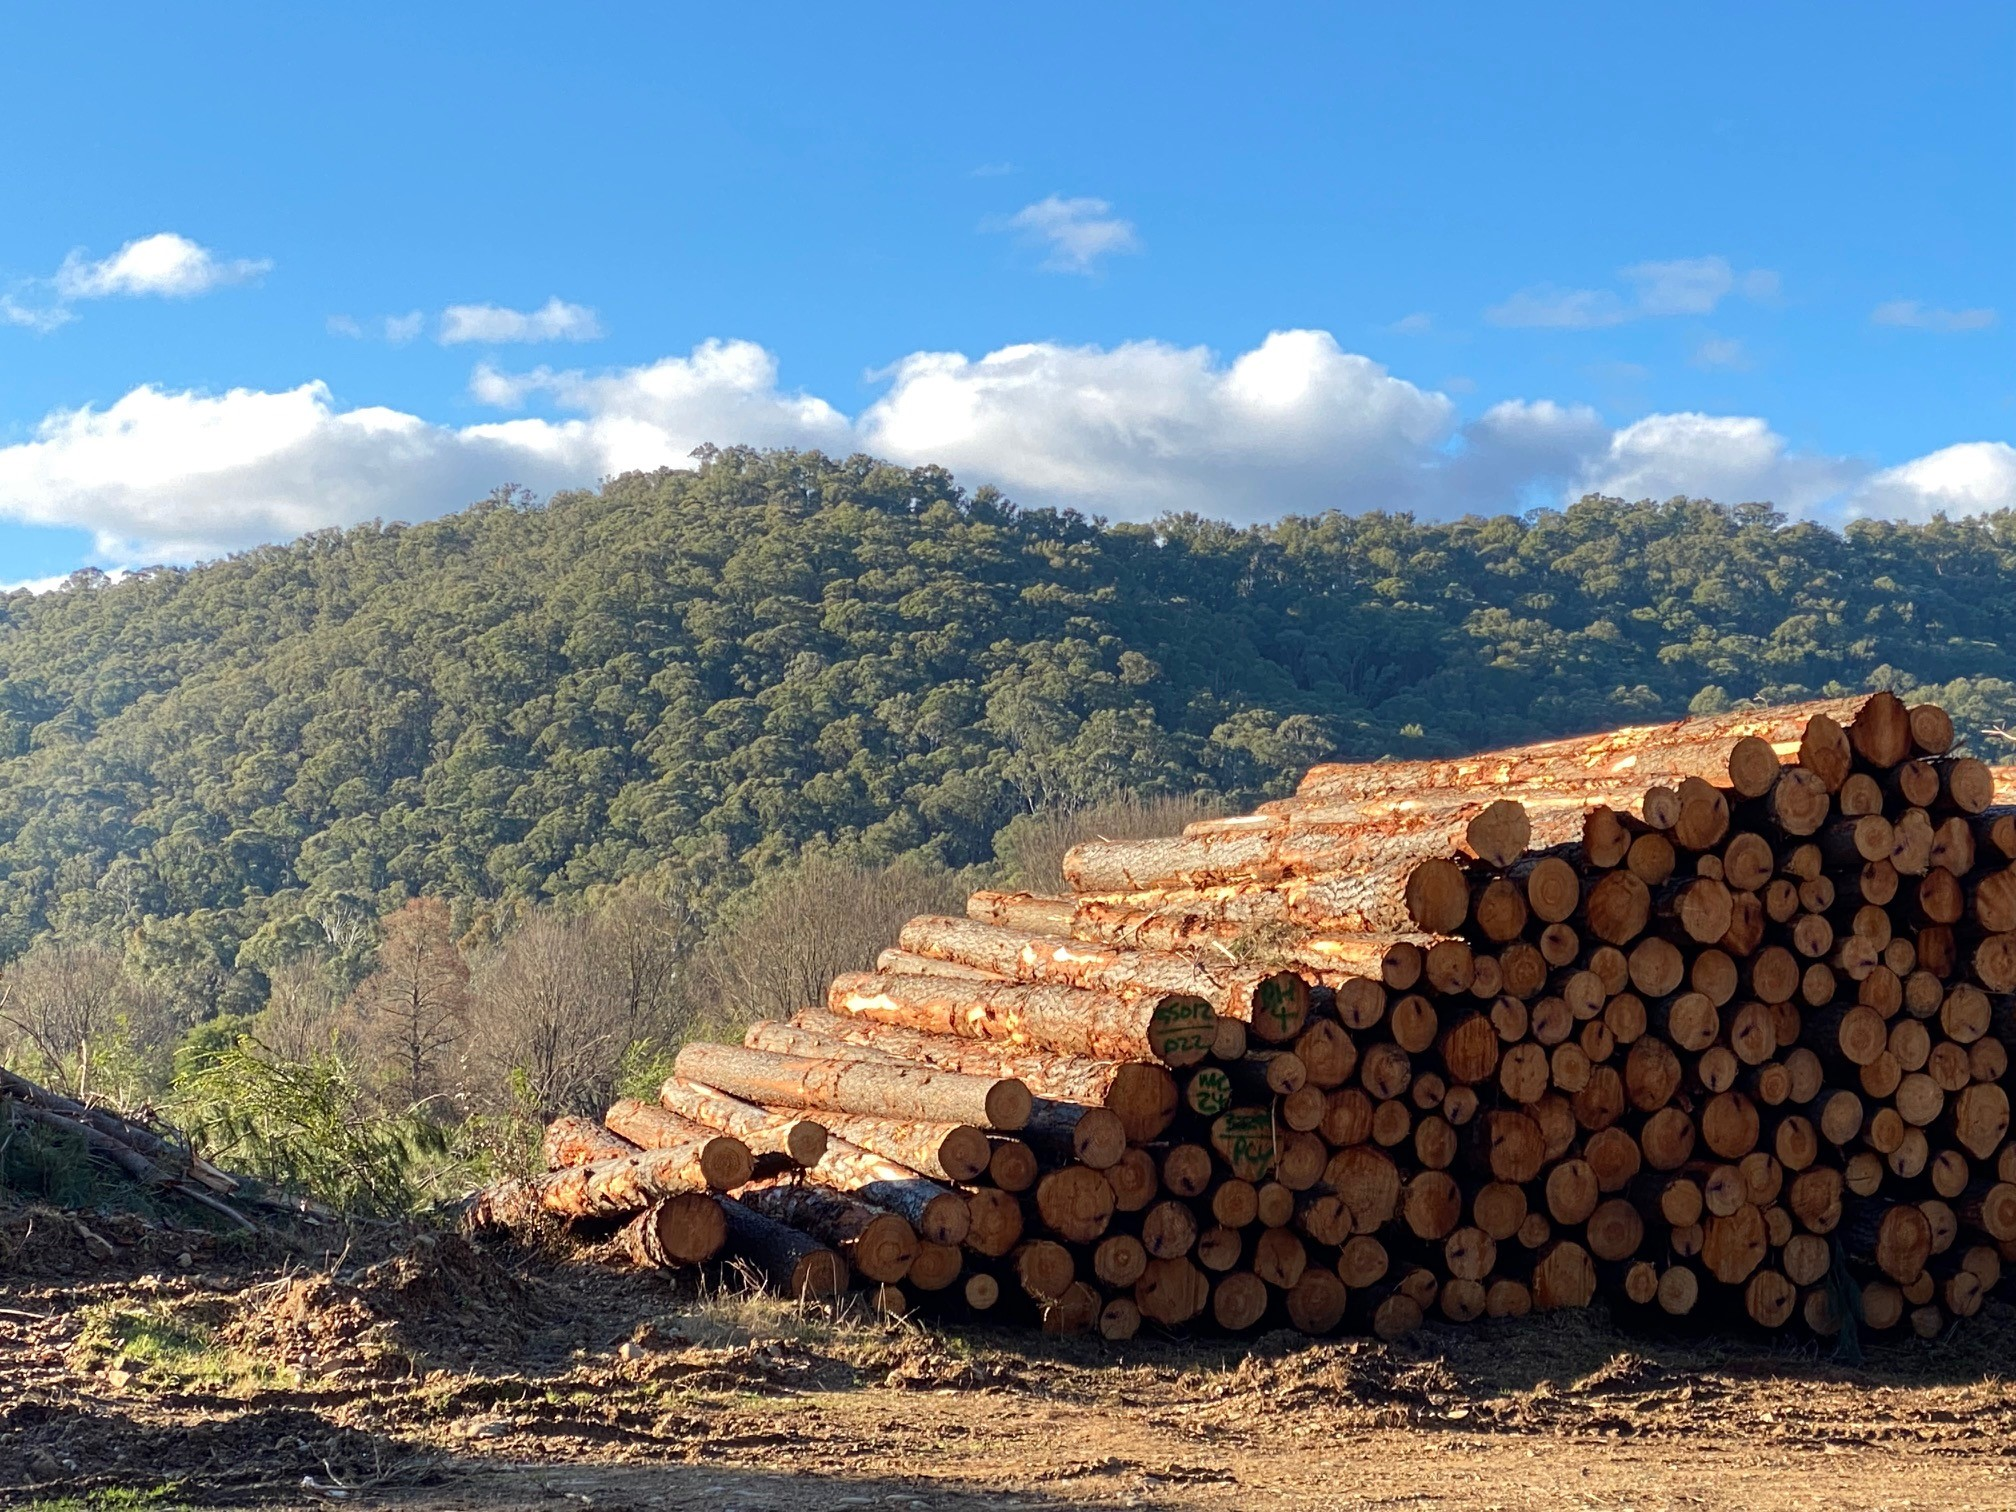 A stack of pine logs ready for transport.